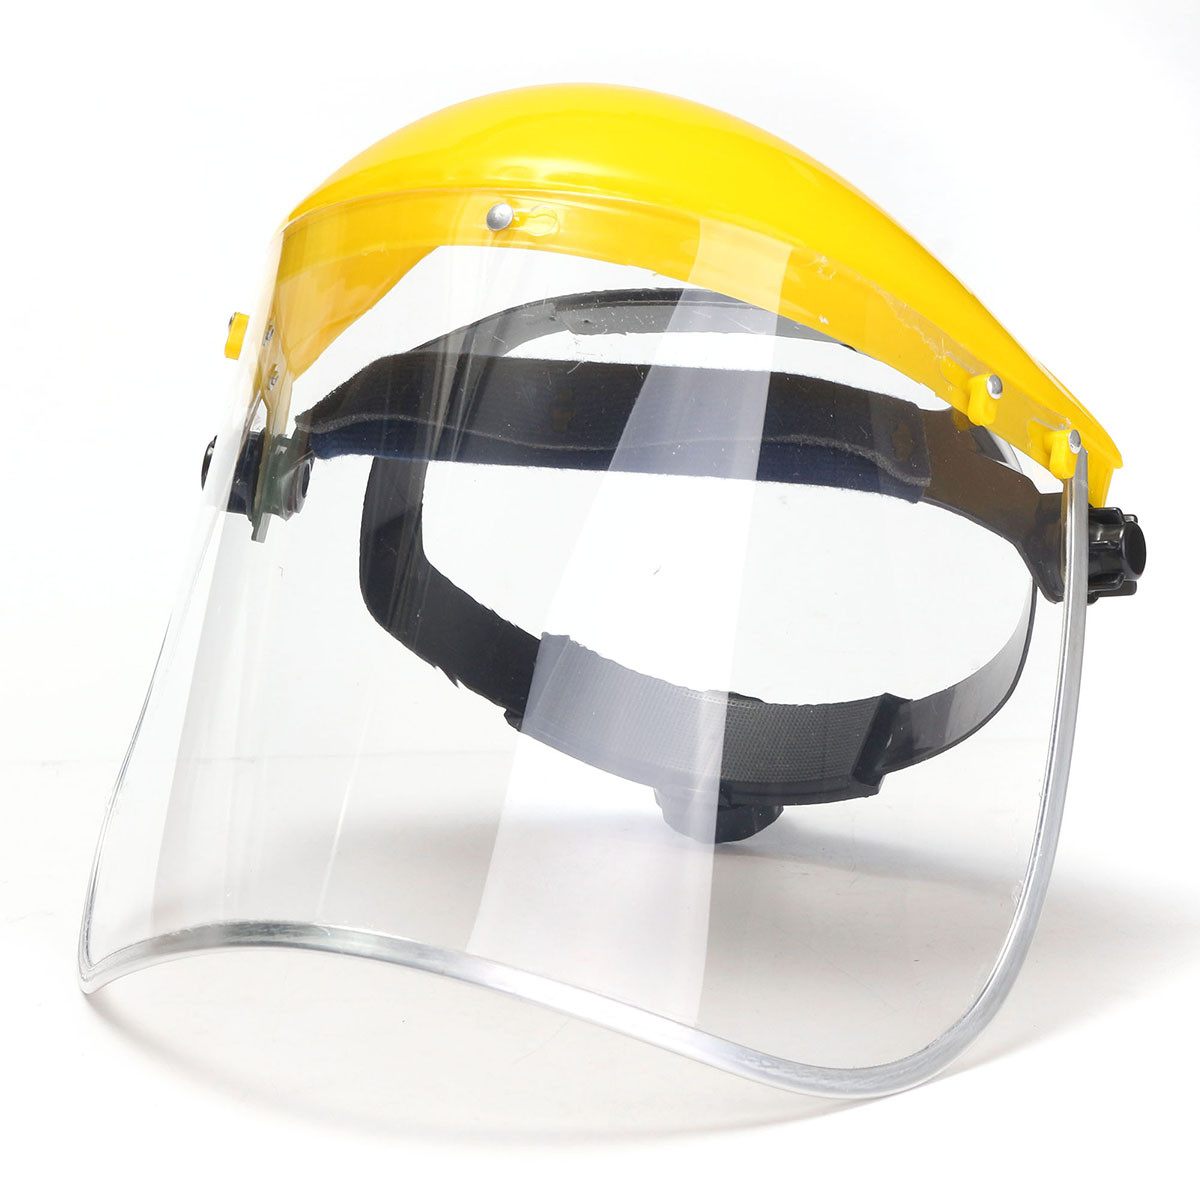 Transparent PVC Safety Faces Shields Screen Spare Visors For Head Mask Eye Faces Protection 33x20.3cm|Masks| |  - title=